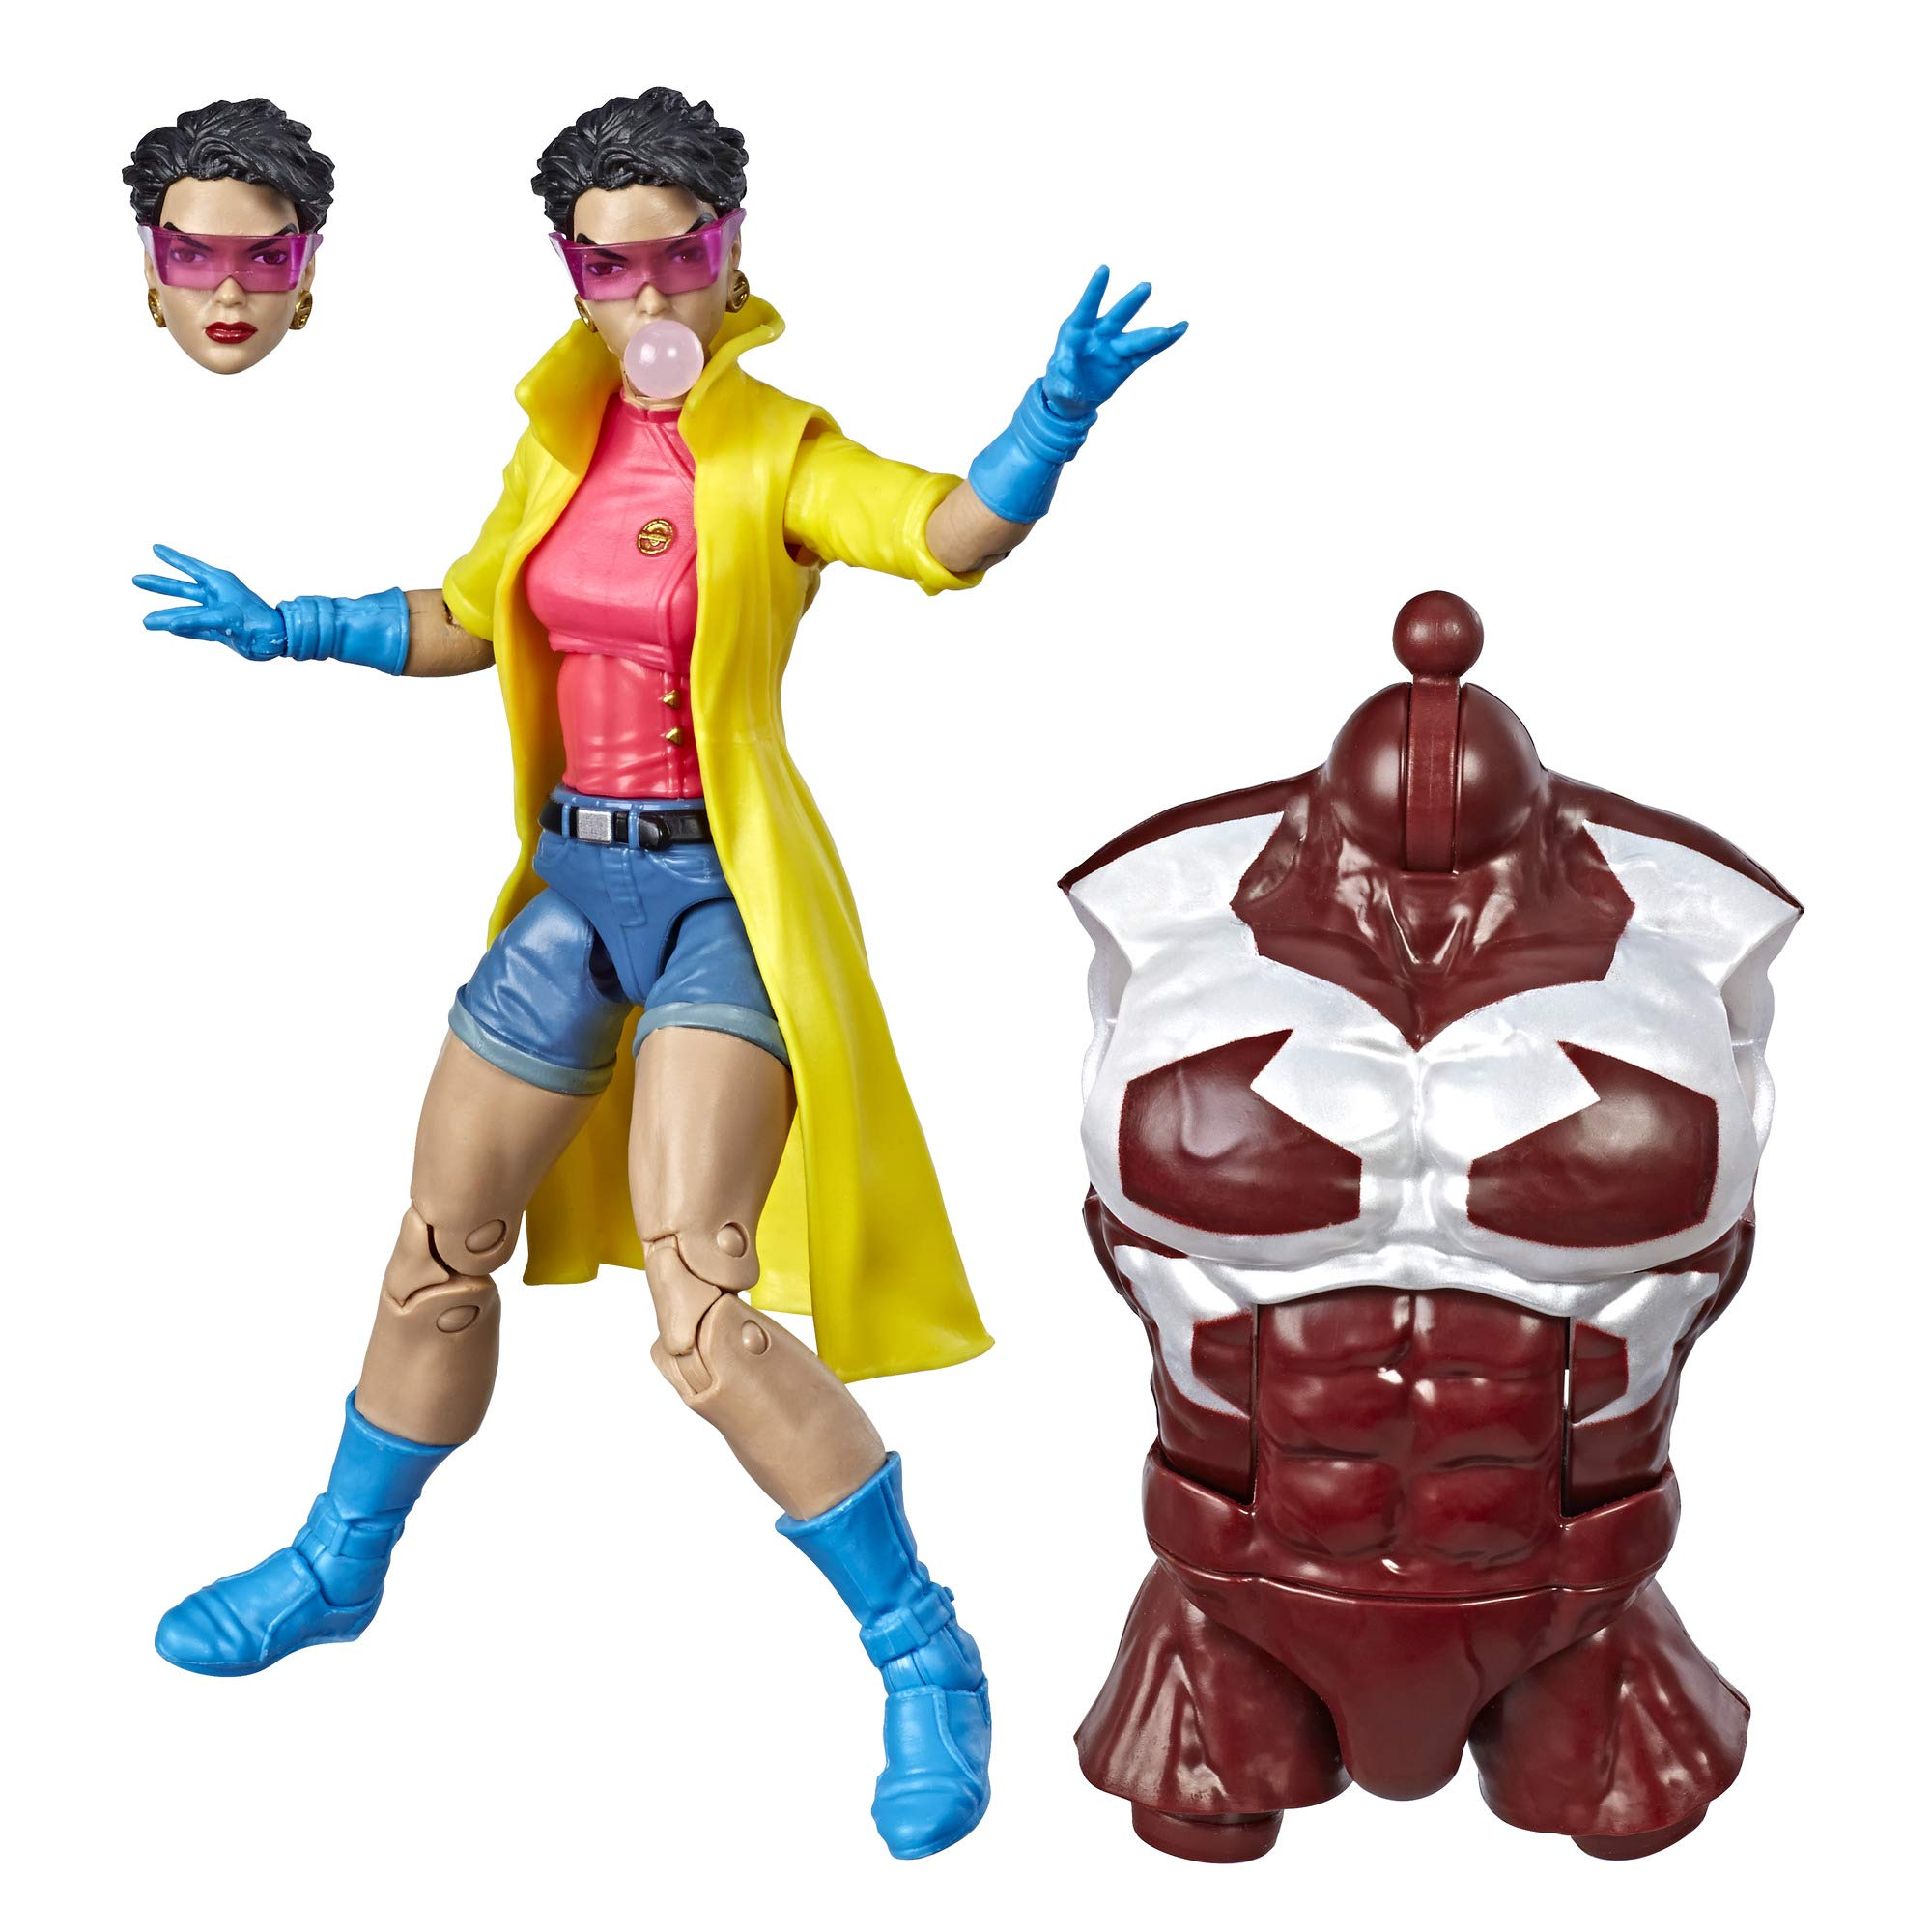 Marvel Hasbro Legends Series 6-inch Collectible Action Figure Jubilee Toy (X-Men Collection) Caliban Build-a-Figure Part by Marvel